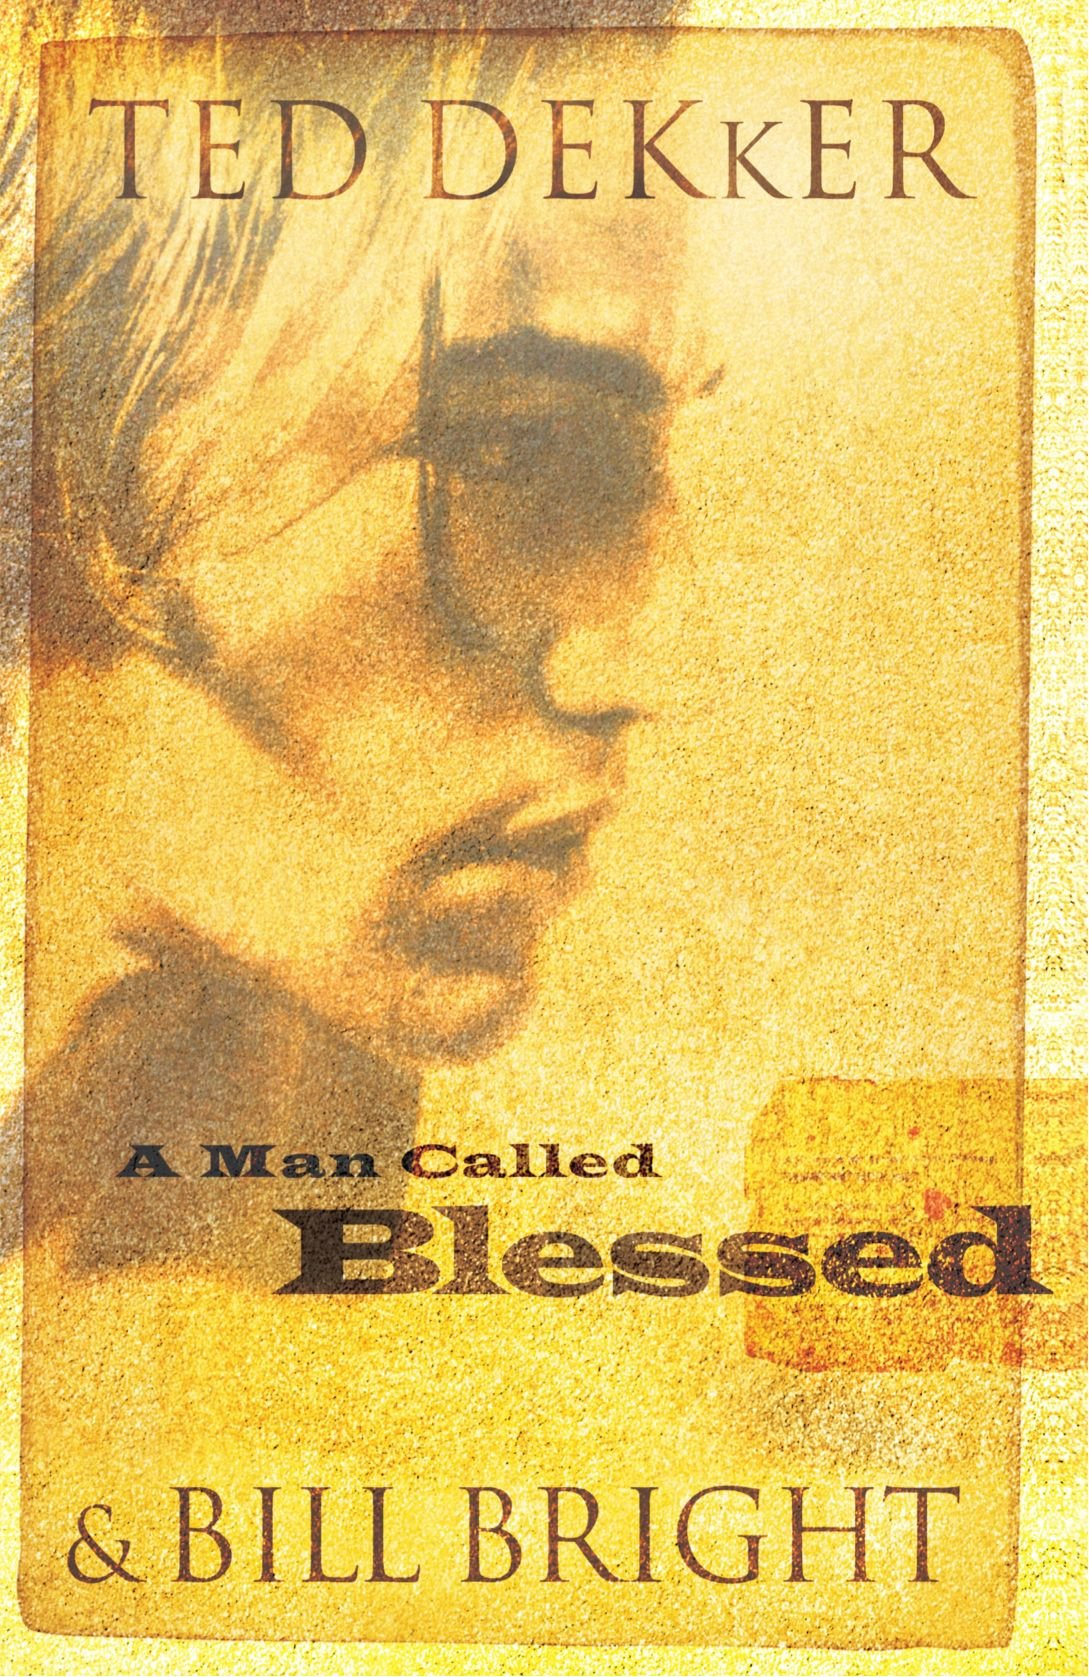 A Man Called Blessed: Ted Dekker: 9780849945144: Amazon com